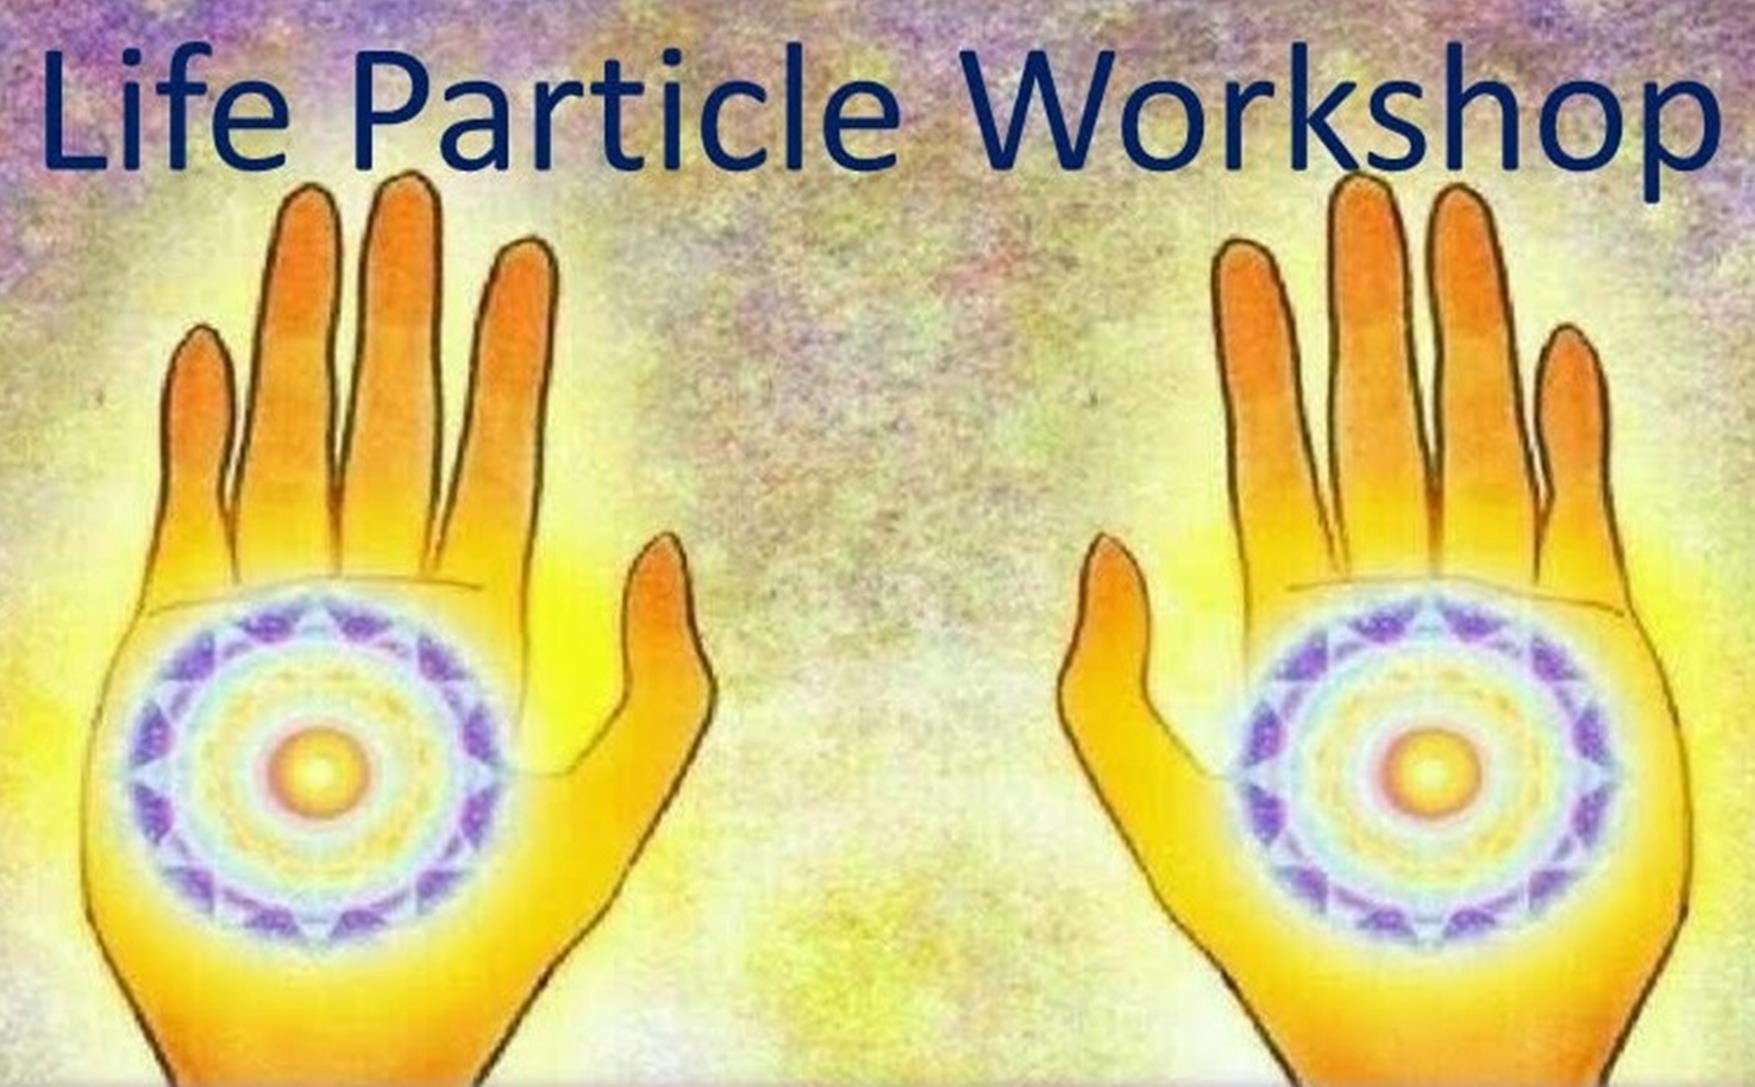 Life Particle Workshop Oct 22nd